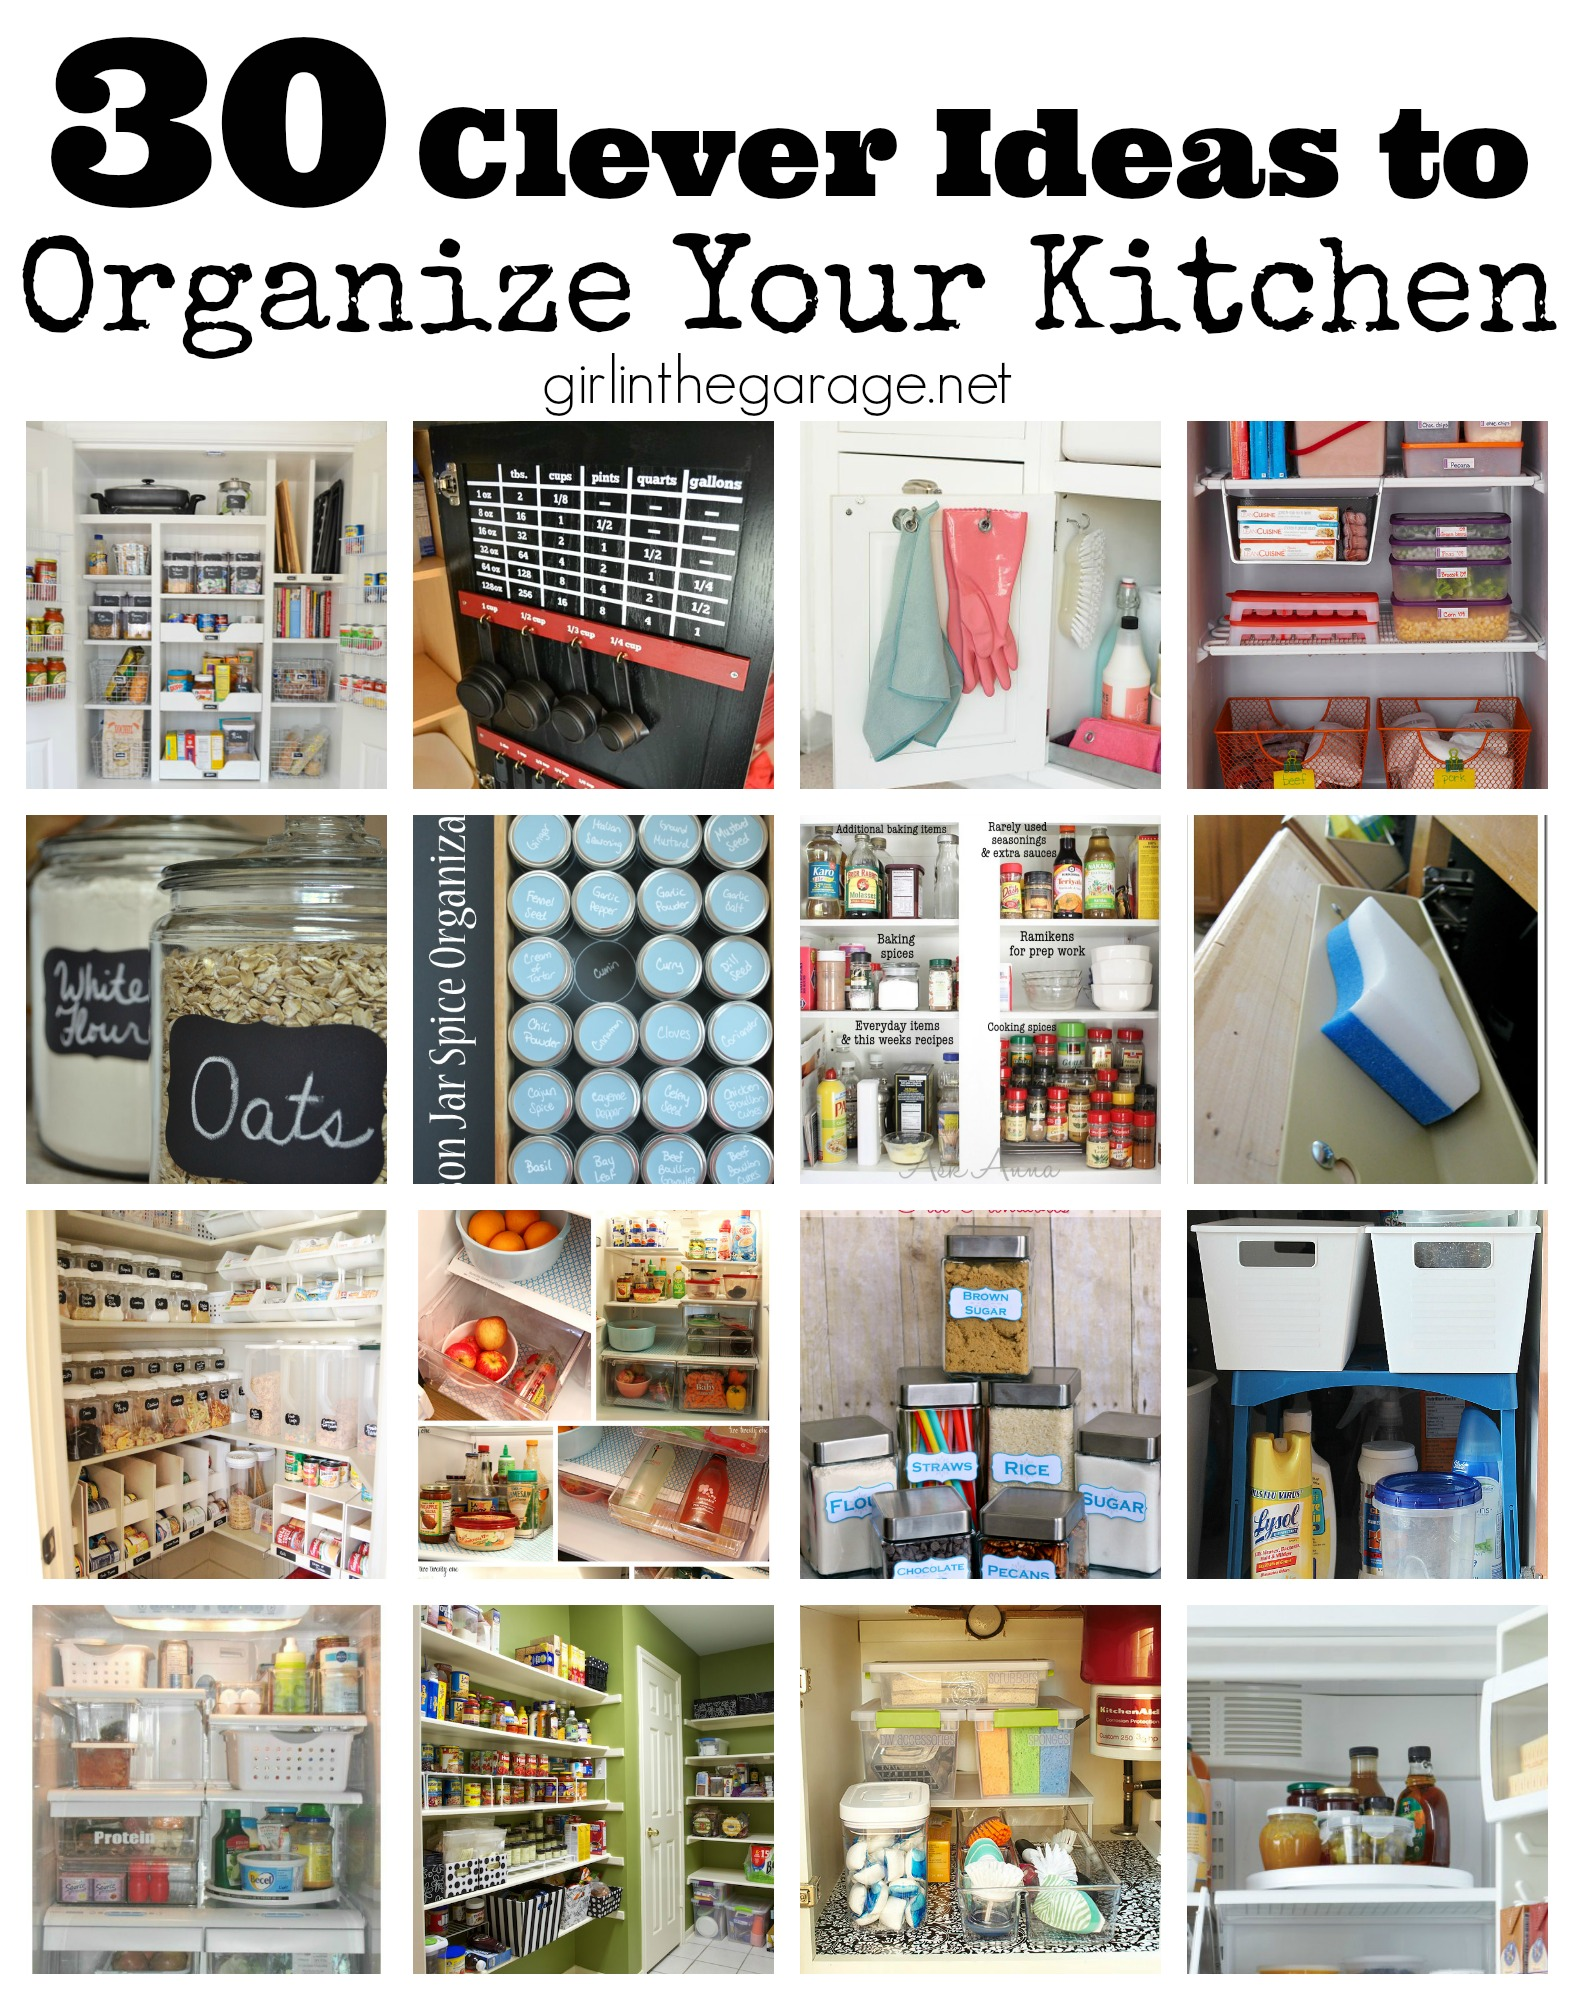 30 clever ideas to organize your kitchen girl in the garage for Ideas for your kitchen